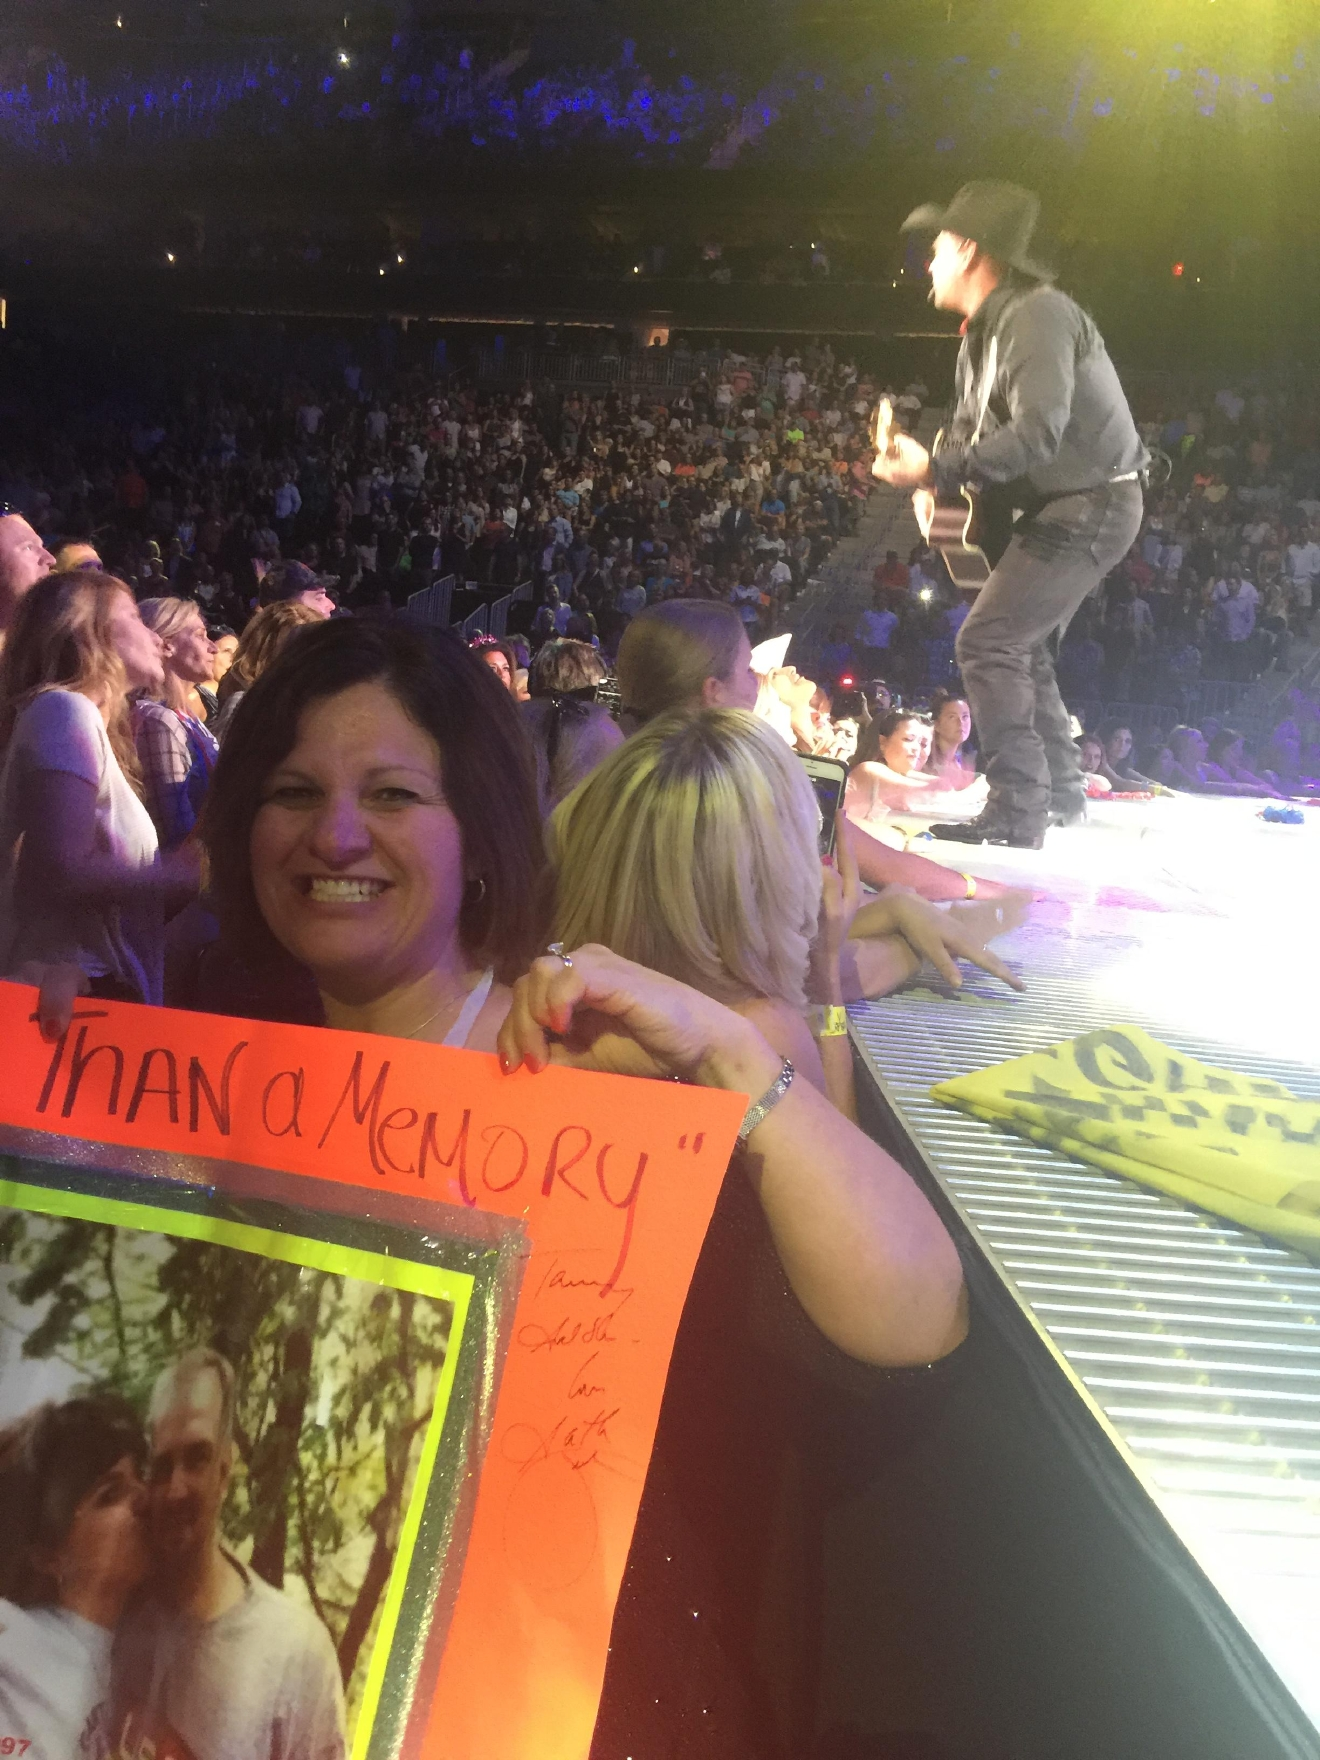 Front and Center. Tammy Roach from Kentucky says Las Vegas has a special place in her heart because Garth Brooks made her night! He stopped his concert to sign a special photo and gave her a shout out at the T-Mobile Arena. 6/27/2016 [Photo Courtesy: Tammy Roach]